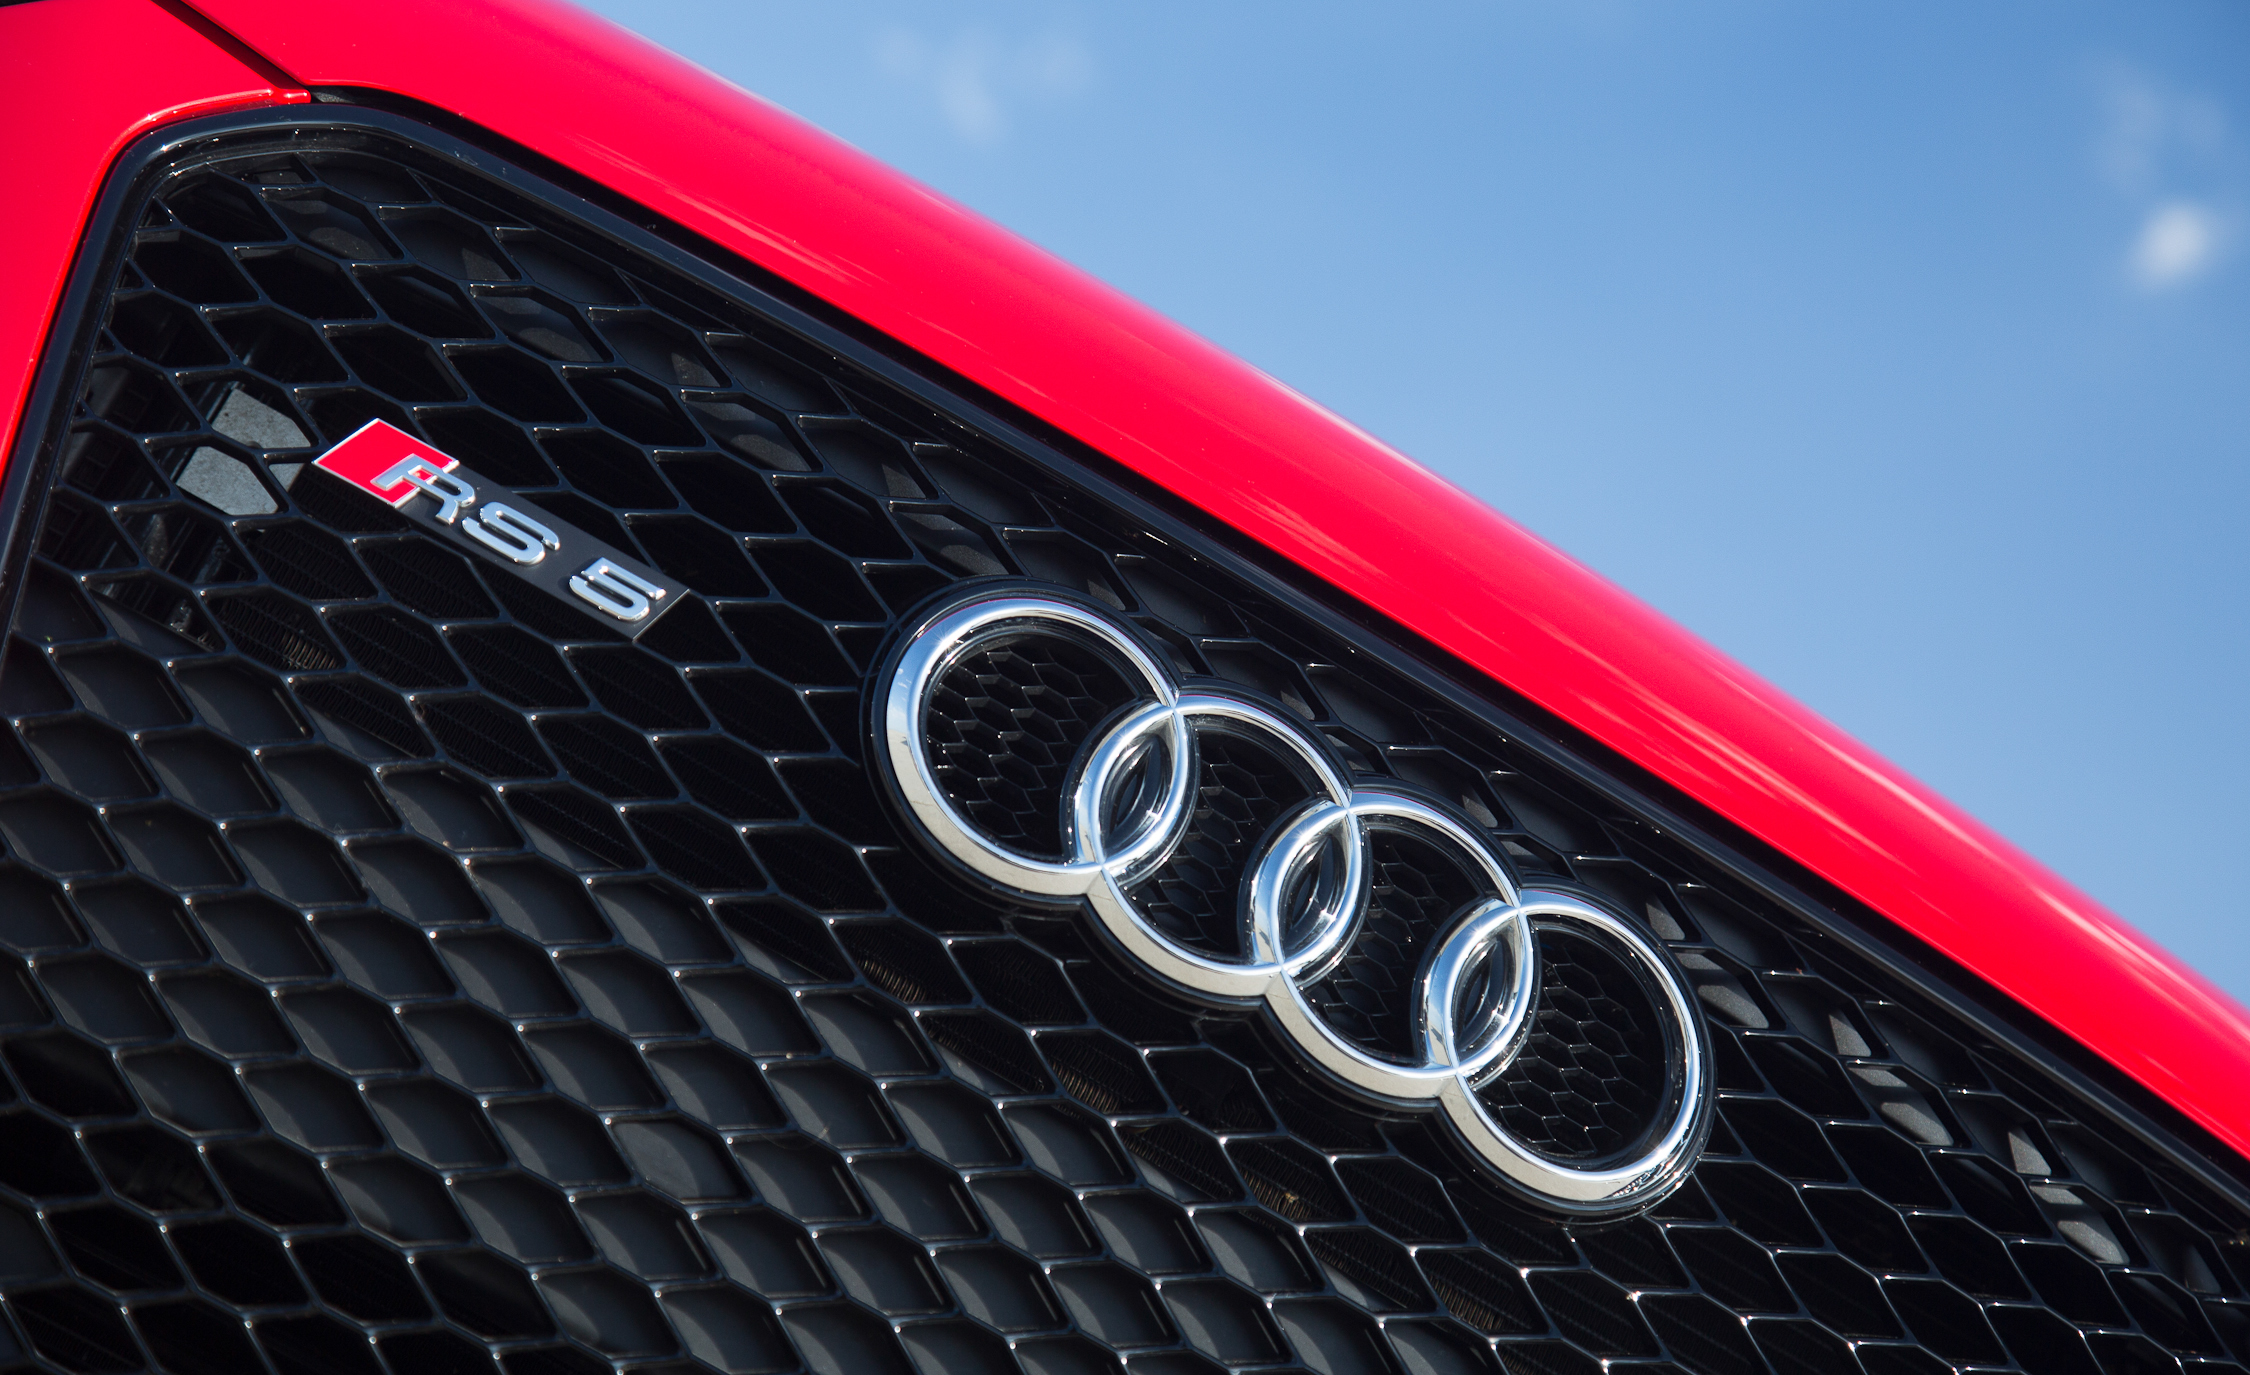 2013 Audi RS 5 Exterior View Front Badge And Grille (Photo 9 of 41)